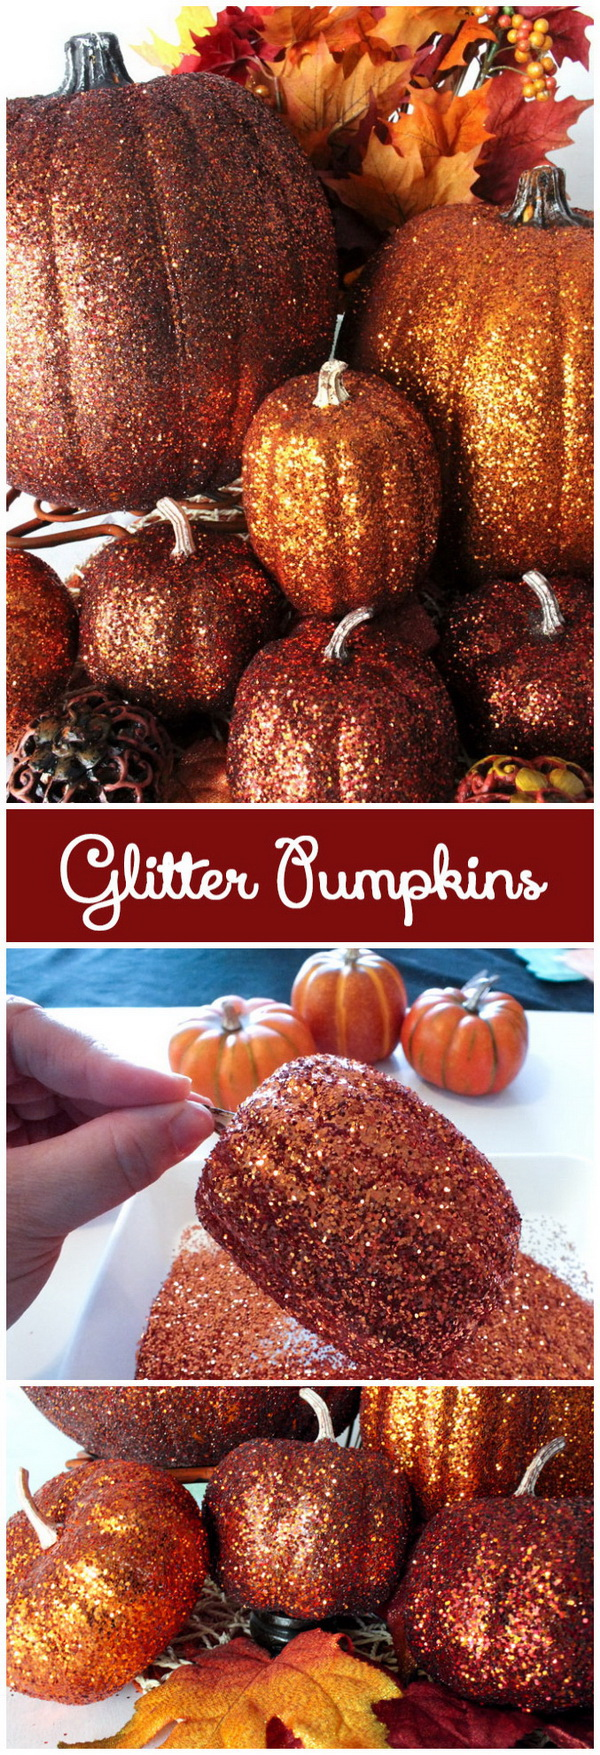 Glittery and Decorative Pumpkins. Stop to decorate this year with plain pumpkins, grab your glitter and add sparkle to your Halloween and fall decor with these stunning glittery pumpkins!